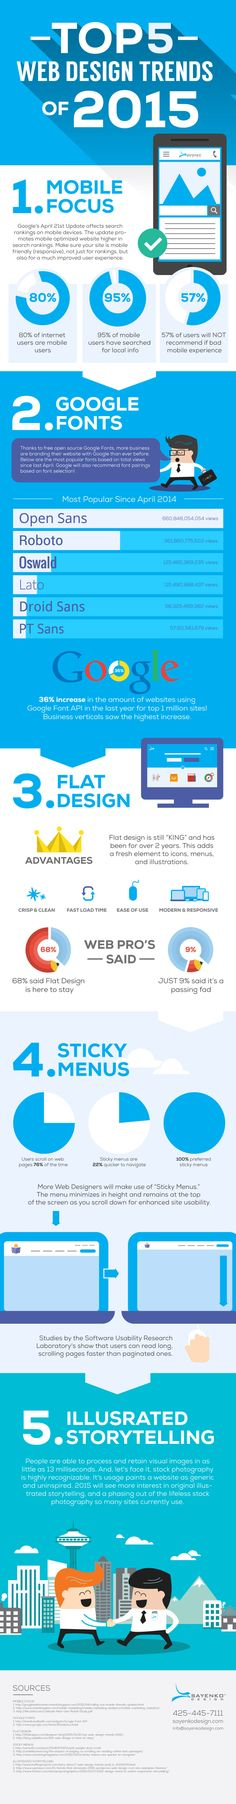 5 Web Design Trends in 2015 You Should Know About - #infographic